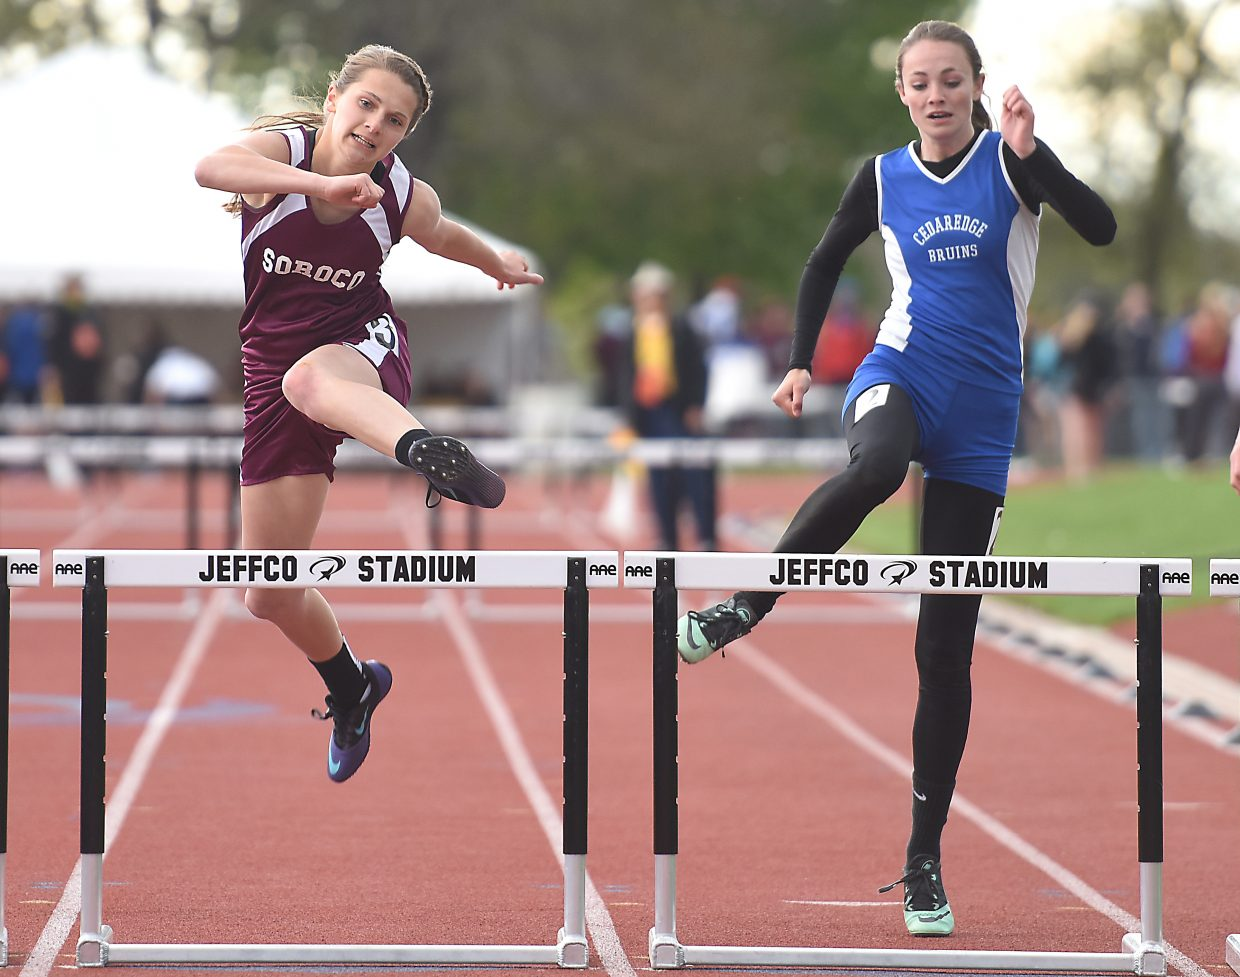 Soroco's Mattie Rossi clears the last hurdle during the 300-meter hurdles race Saturday at the state track meet in Lakewood. She placed seventh.